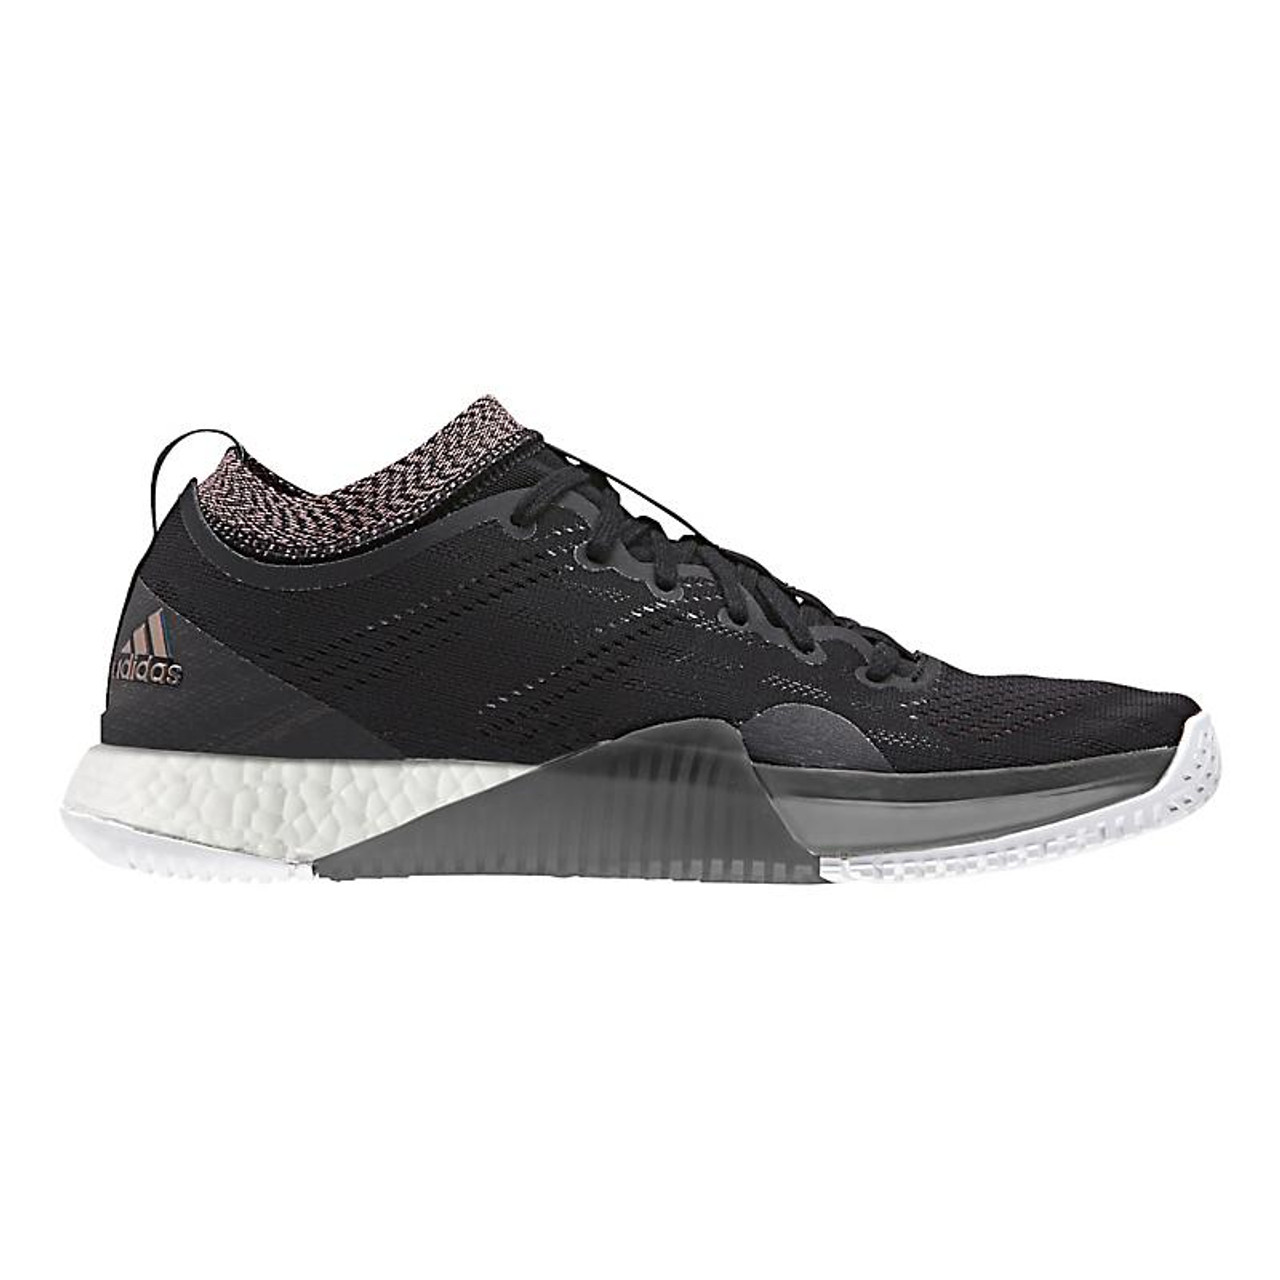 Women's adidas CrazyTrain Elite